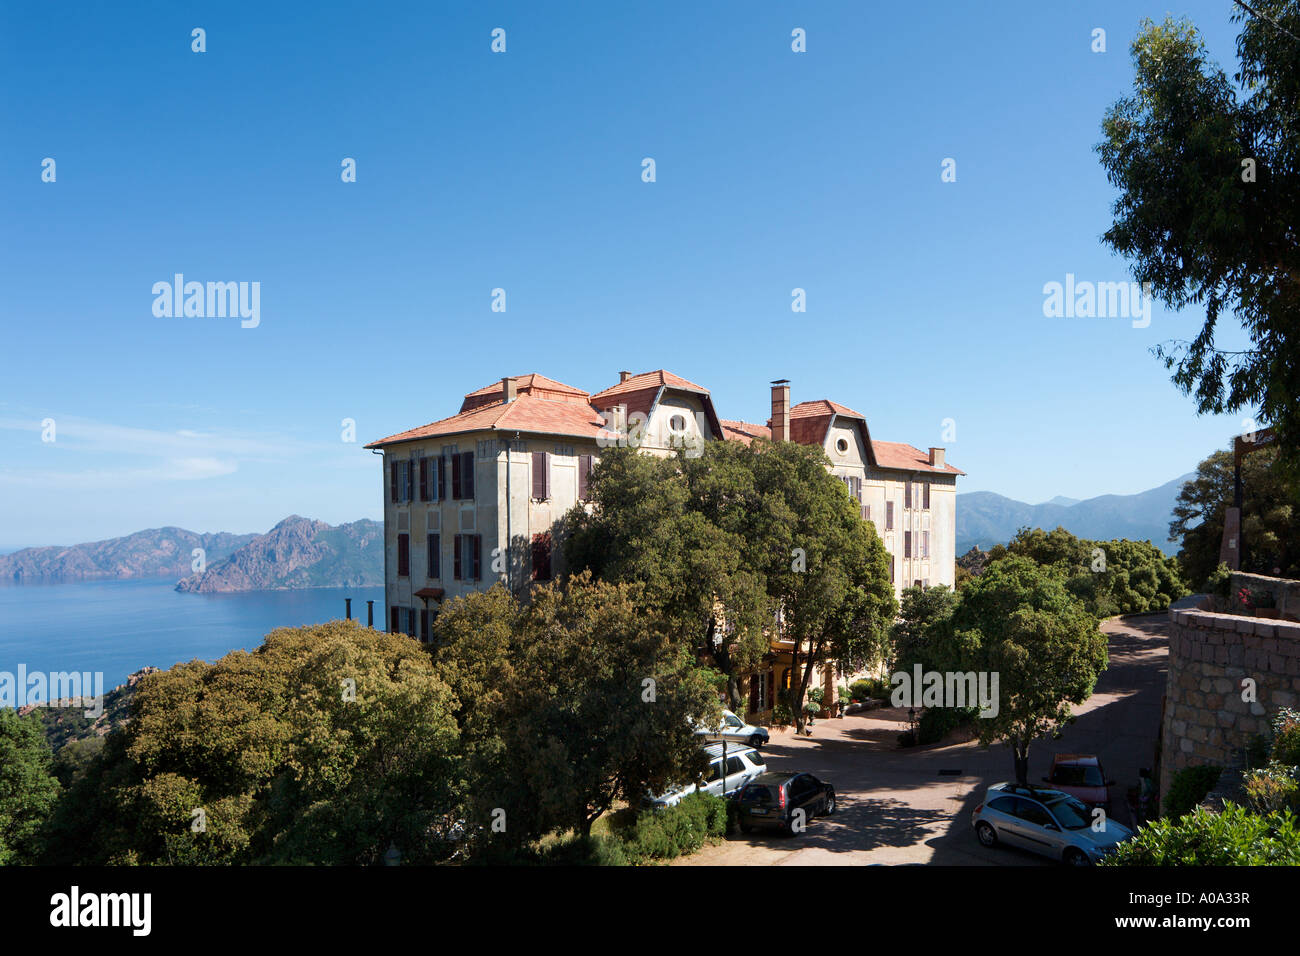 Hotel Des Roches Rouges Les Roches Rouges Hotel Piana Gulf Of Porto Corsica France